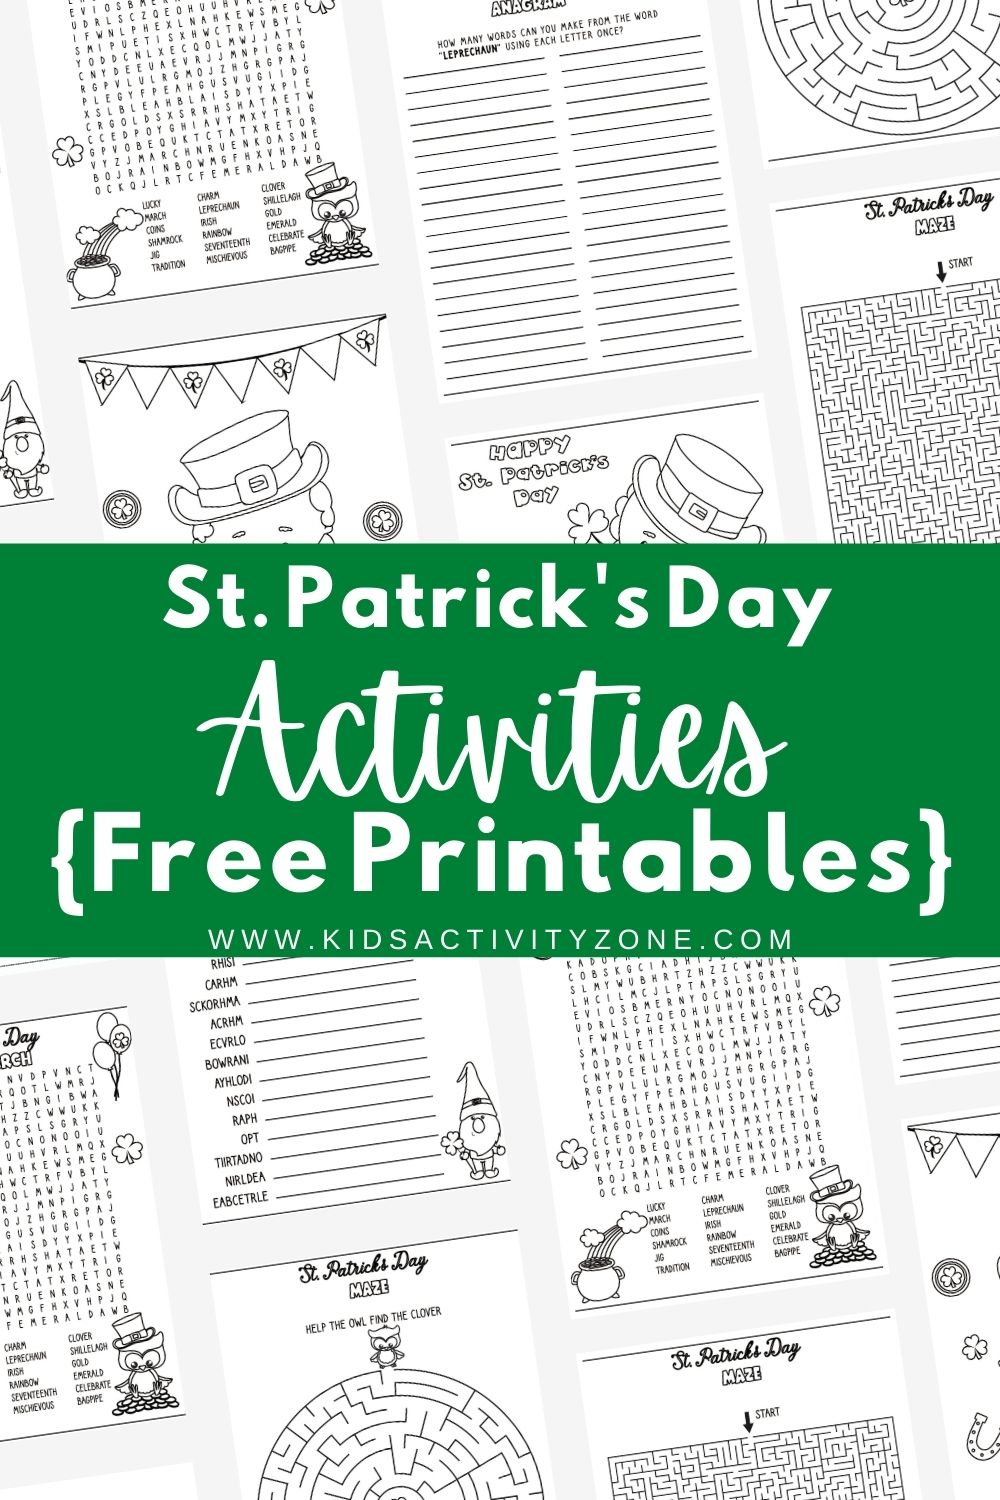 Grab these fun, themed St. Patrick's Day Activities. These free printables include mazes, coloring pages, word scrambles and more. The perfect addition to parties, fun for the classroom after finishing work and more.